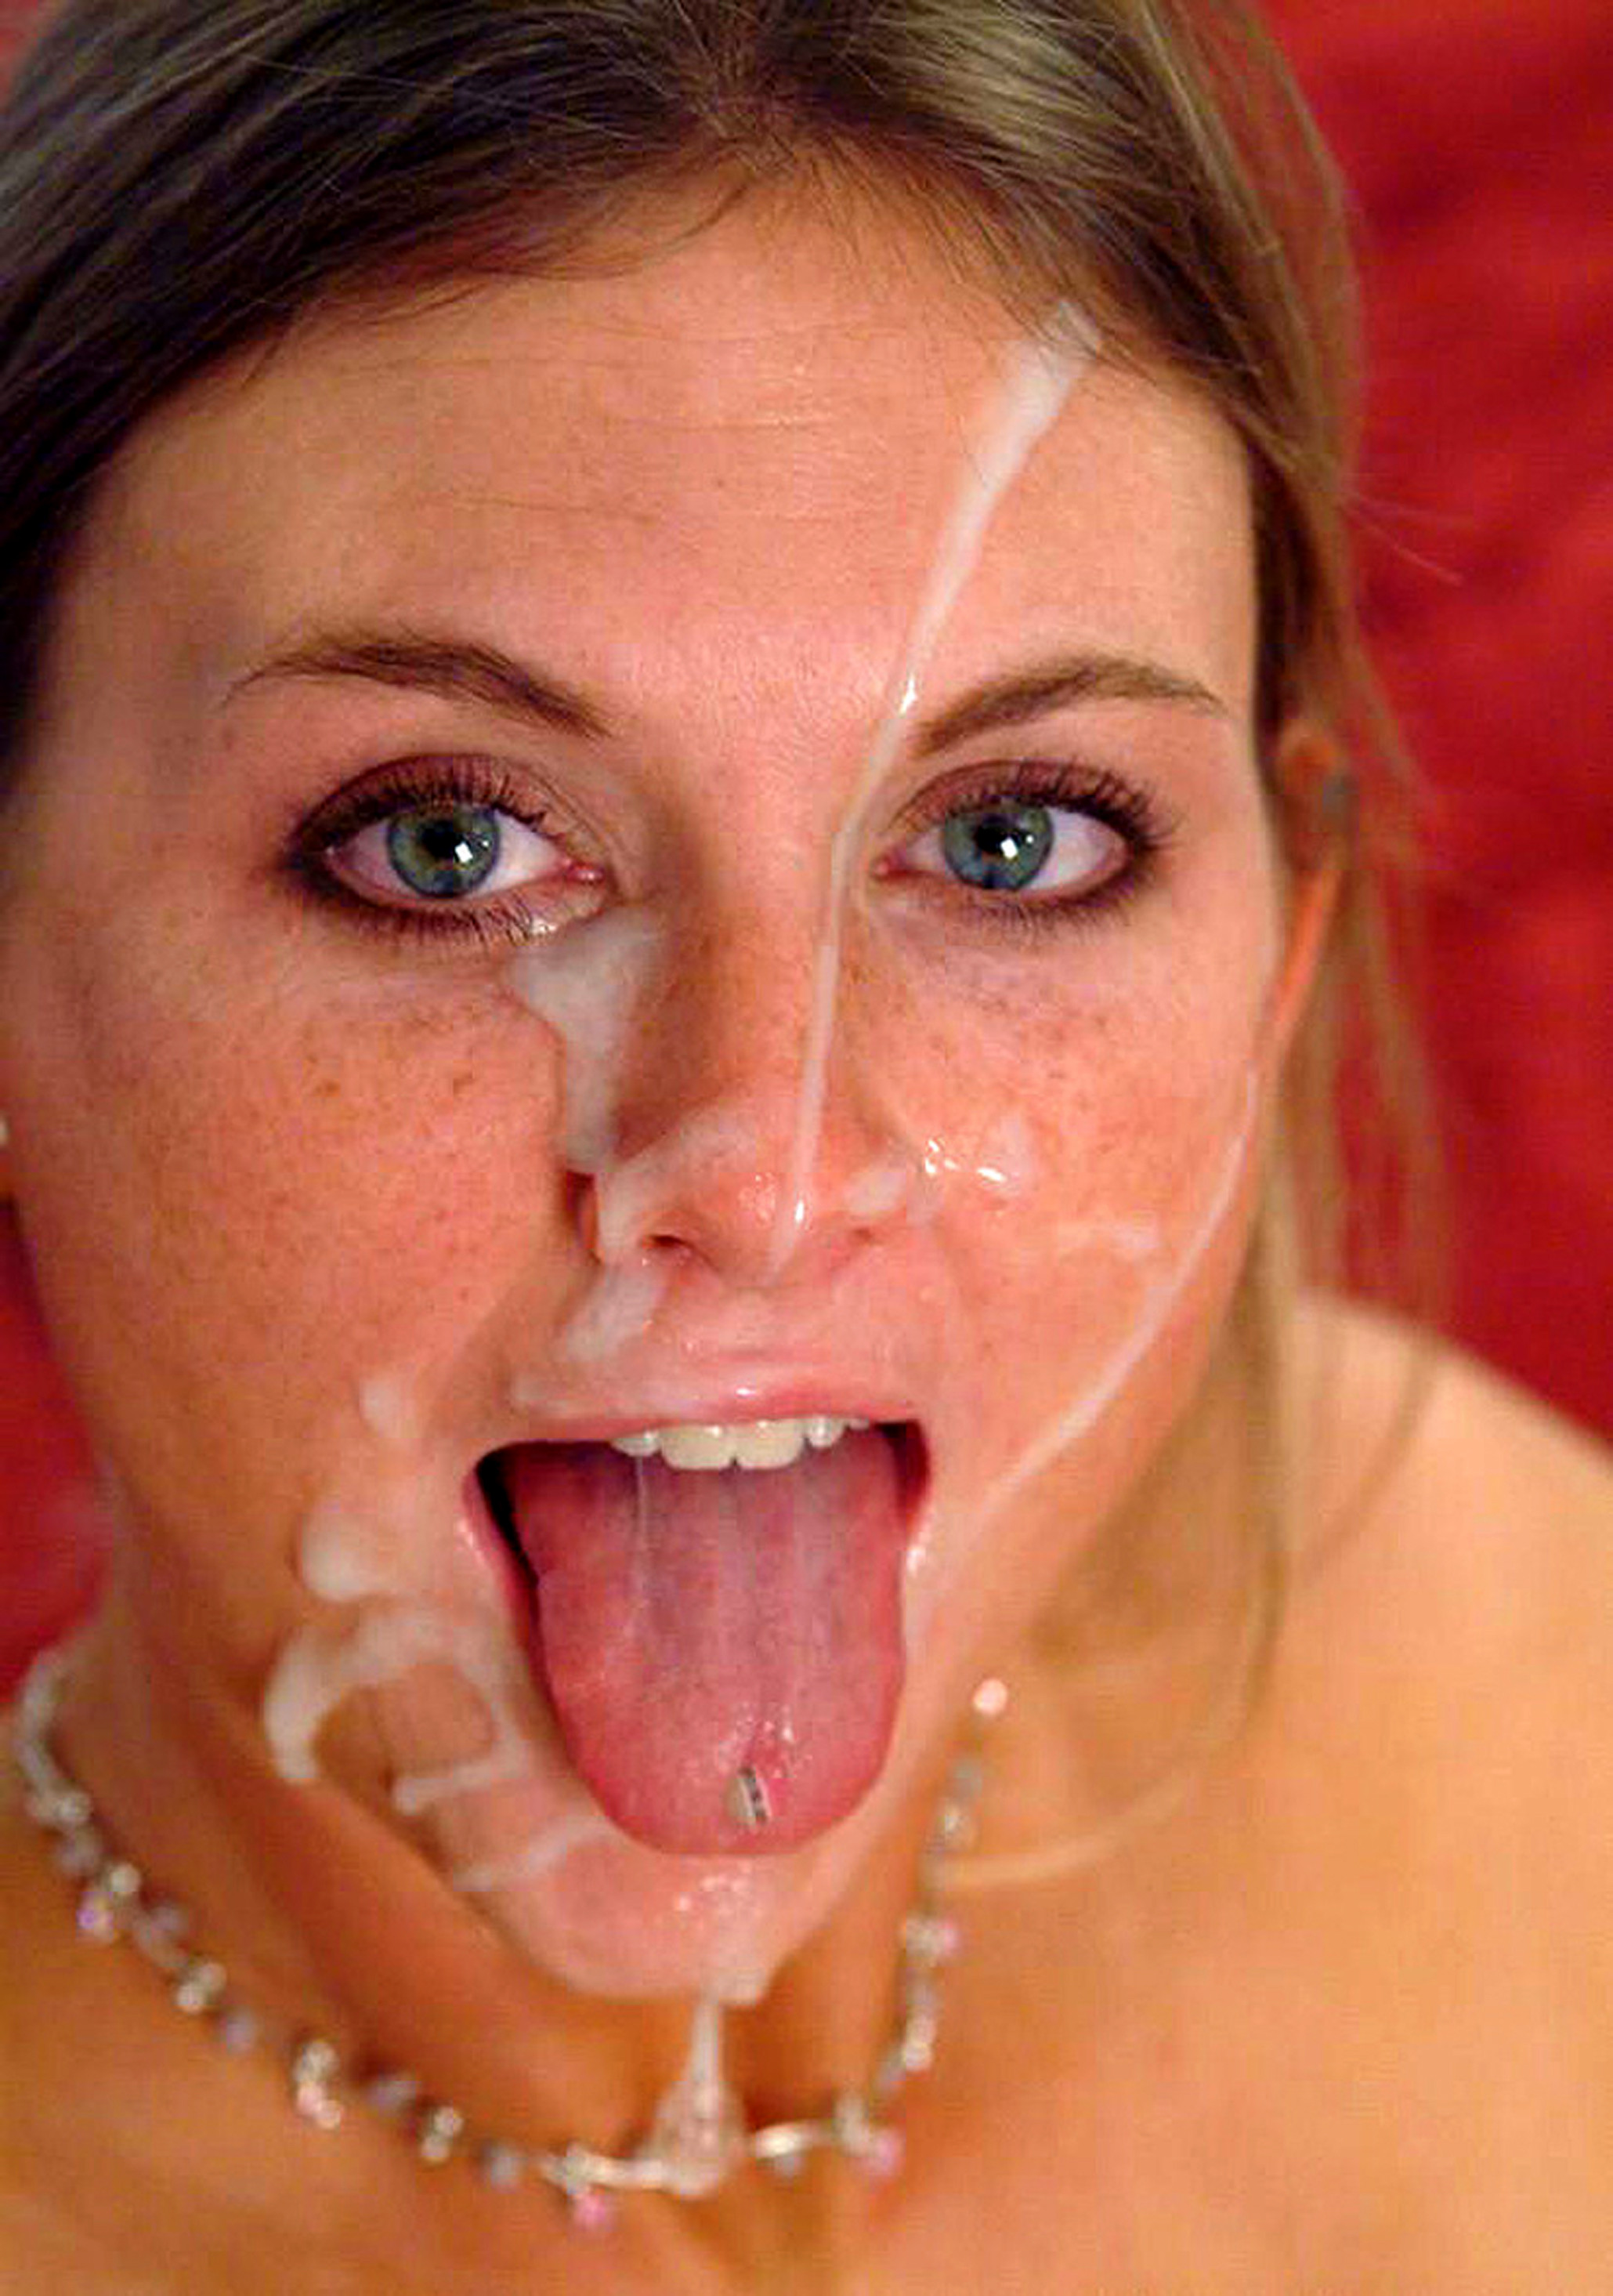 HQ cumshot facials - MOTHERLESS.COM